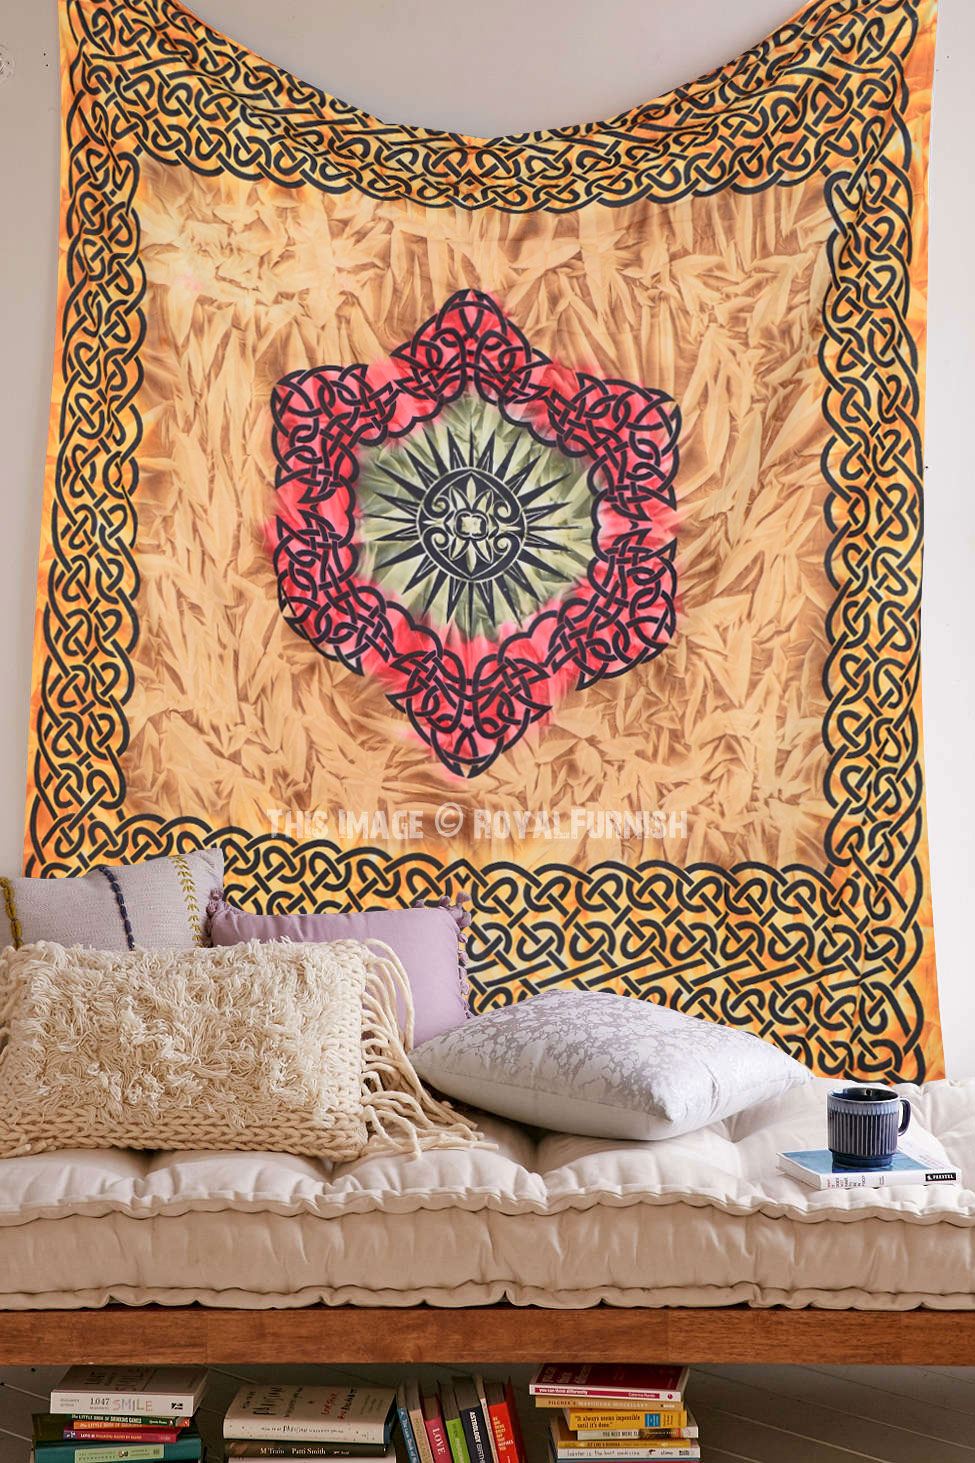 Multi Large Celtic Diamond Tapestry Wall Hanging, Tie Dye Tapestry Bedding - RoyalFurnish.com